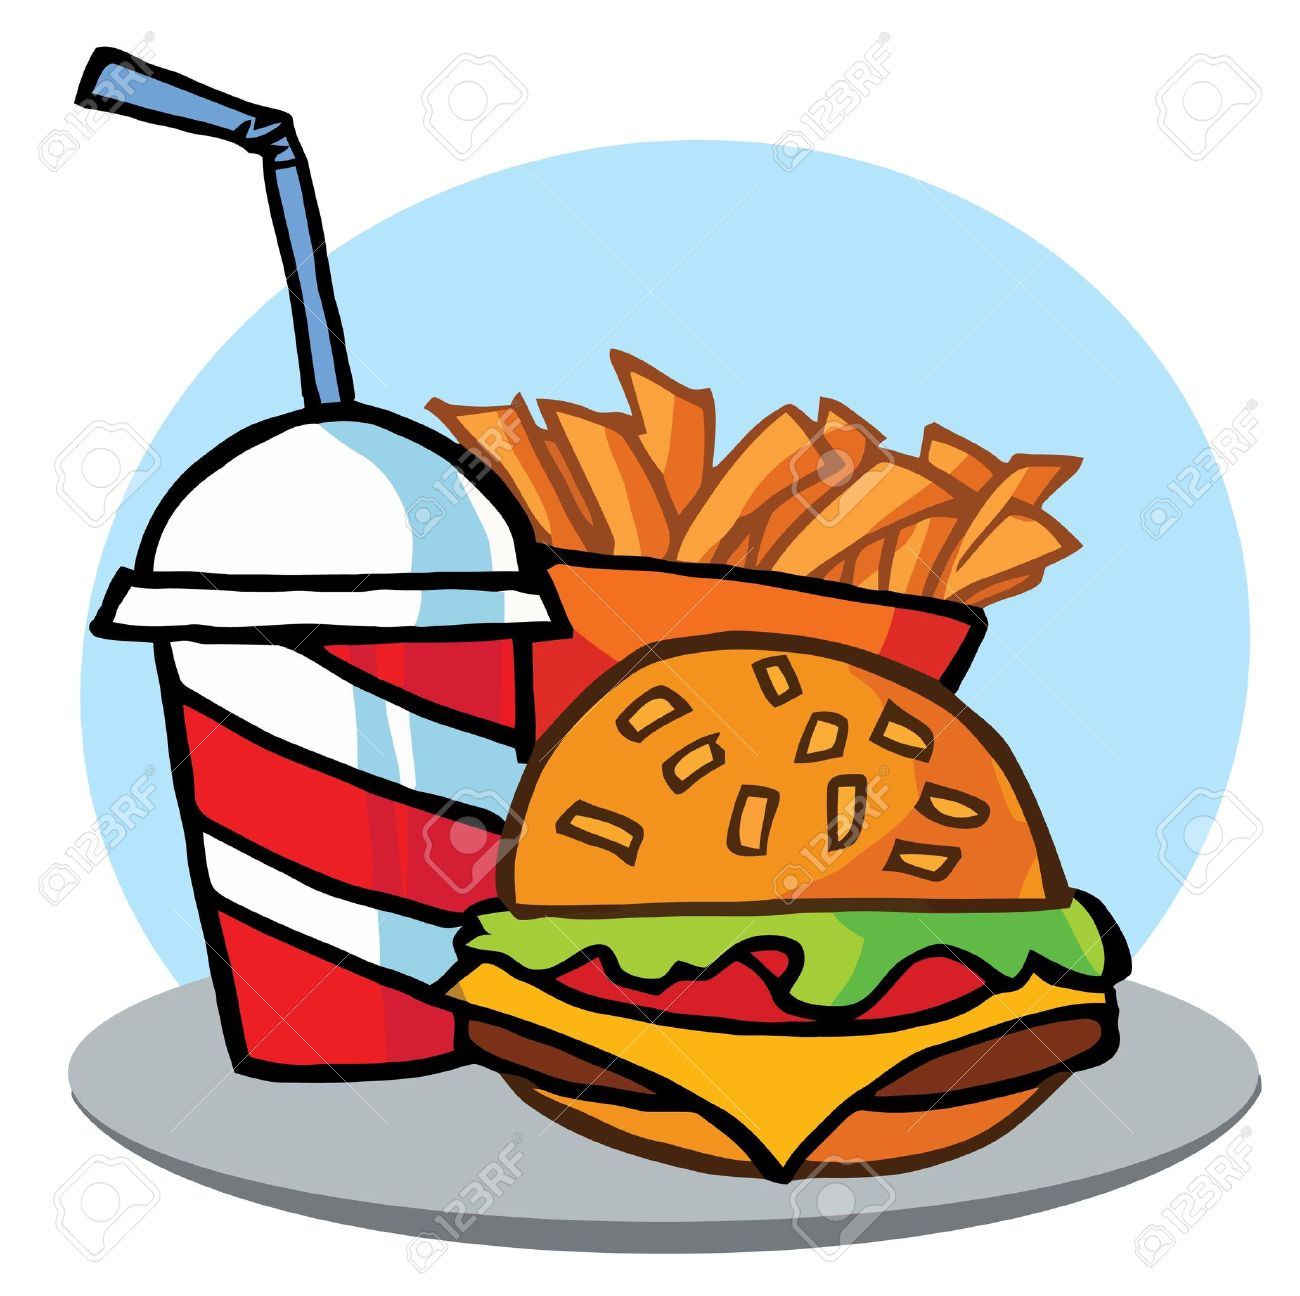 fast food drawing at getdrawings com free for personal use fast rh getdrawings com